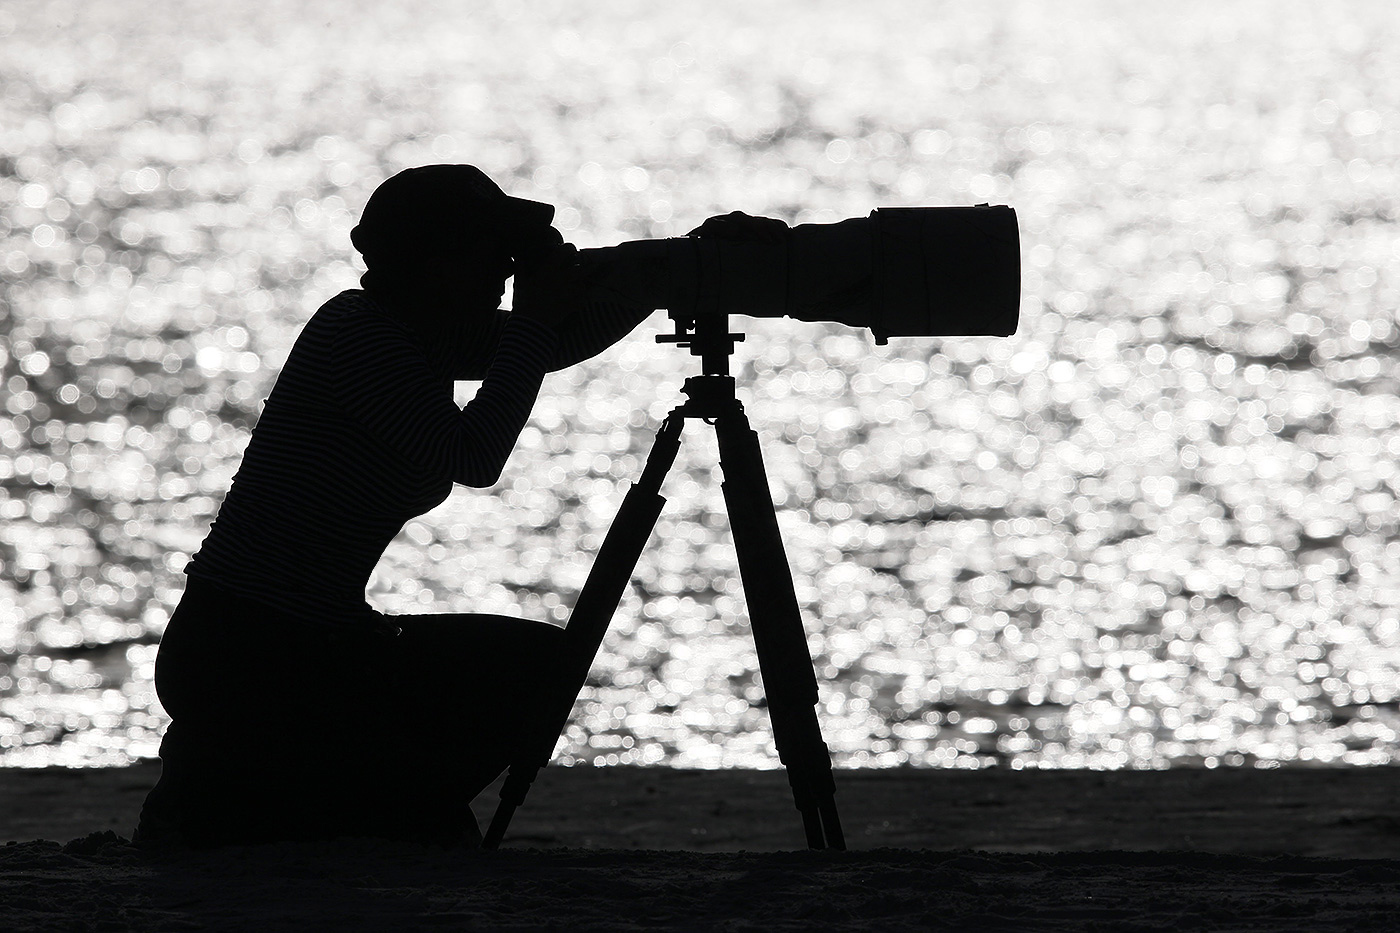 THE RIGHT GEAR FOR EVERY IMAGE…. - For landscape photography I rely on my Sony gear. For birds and wildlife I use Canon because of the tracking and lens line up. I use my Olympus gear for travel, infrared and flower photography.